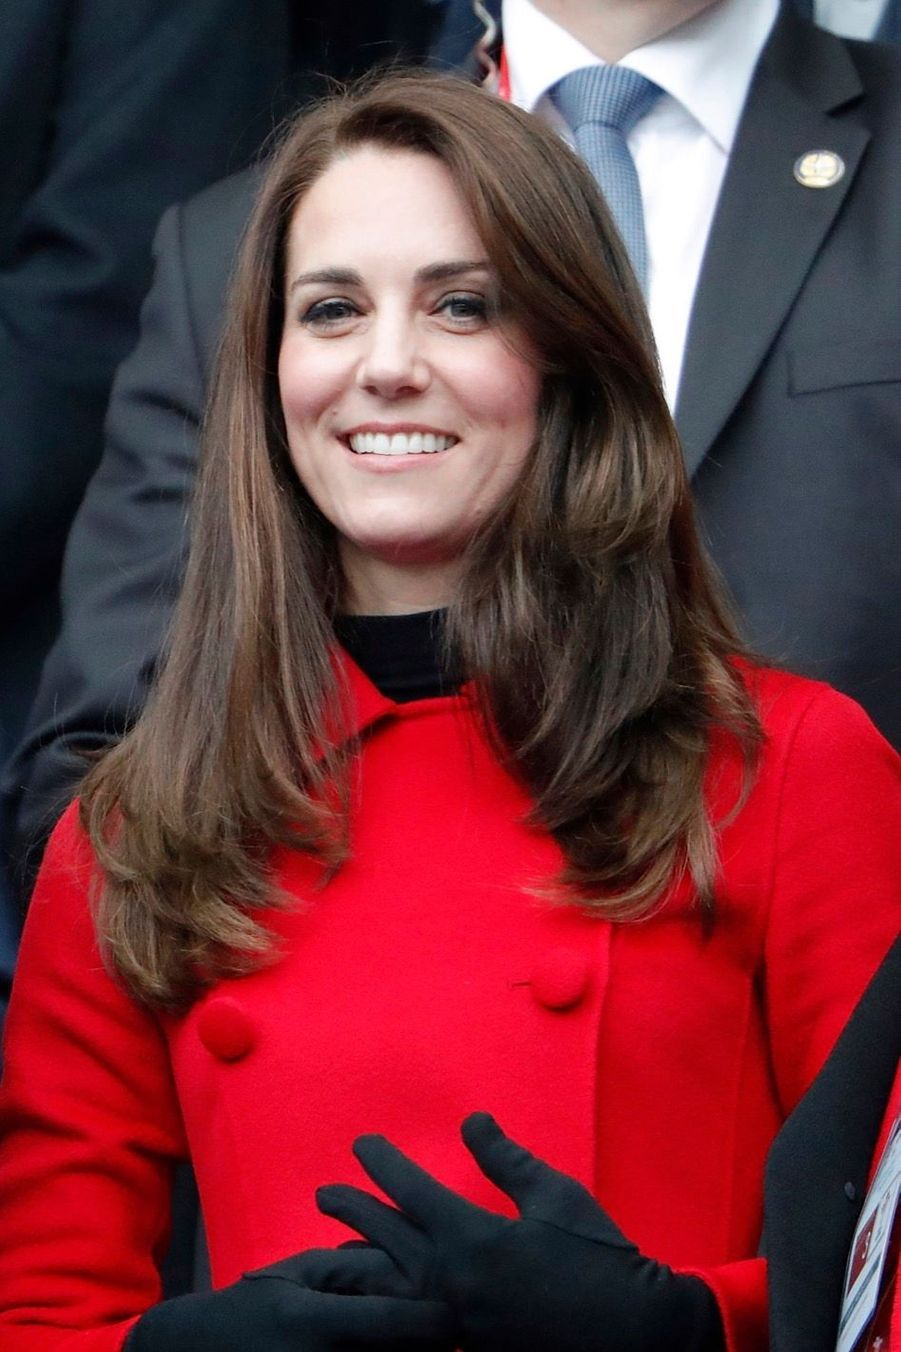 Kate Middleton Et Le Prince William Au Stade De France Pour Le Match De Rugby France Pays De Galles 25